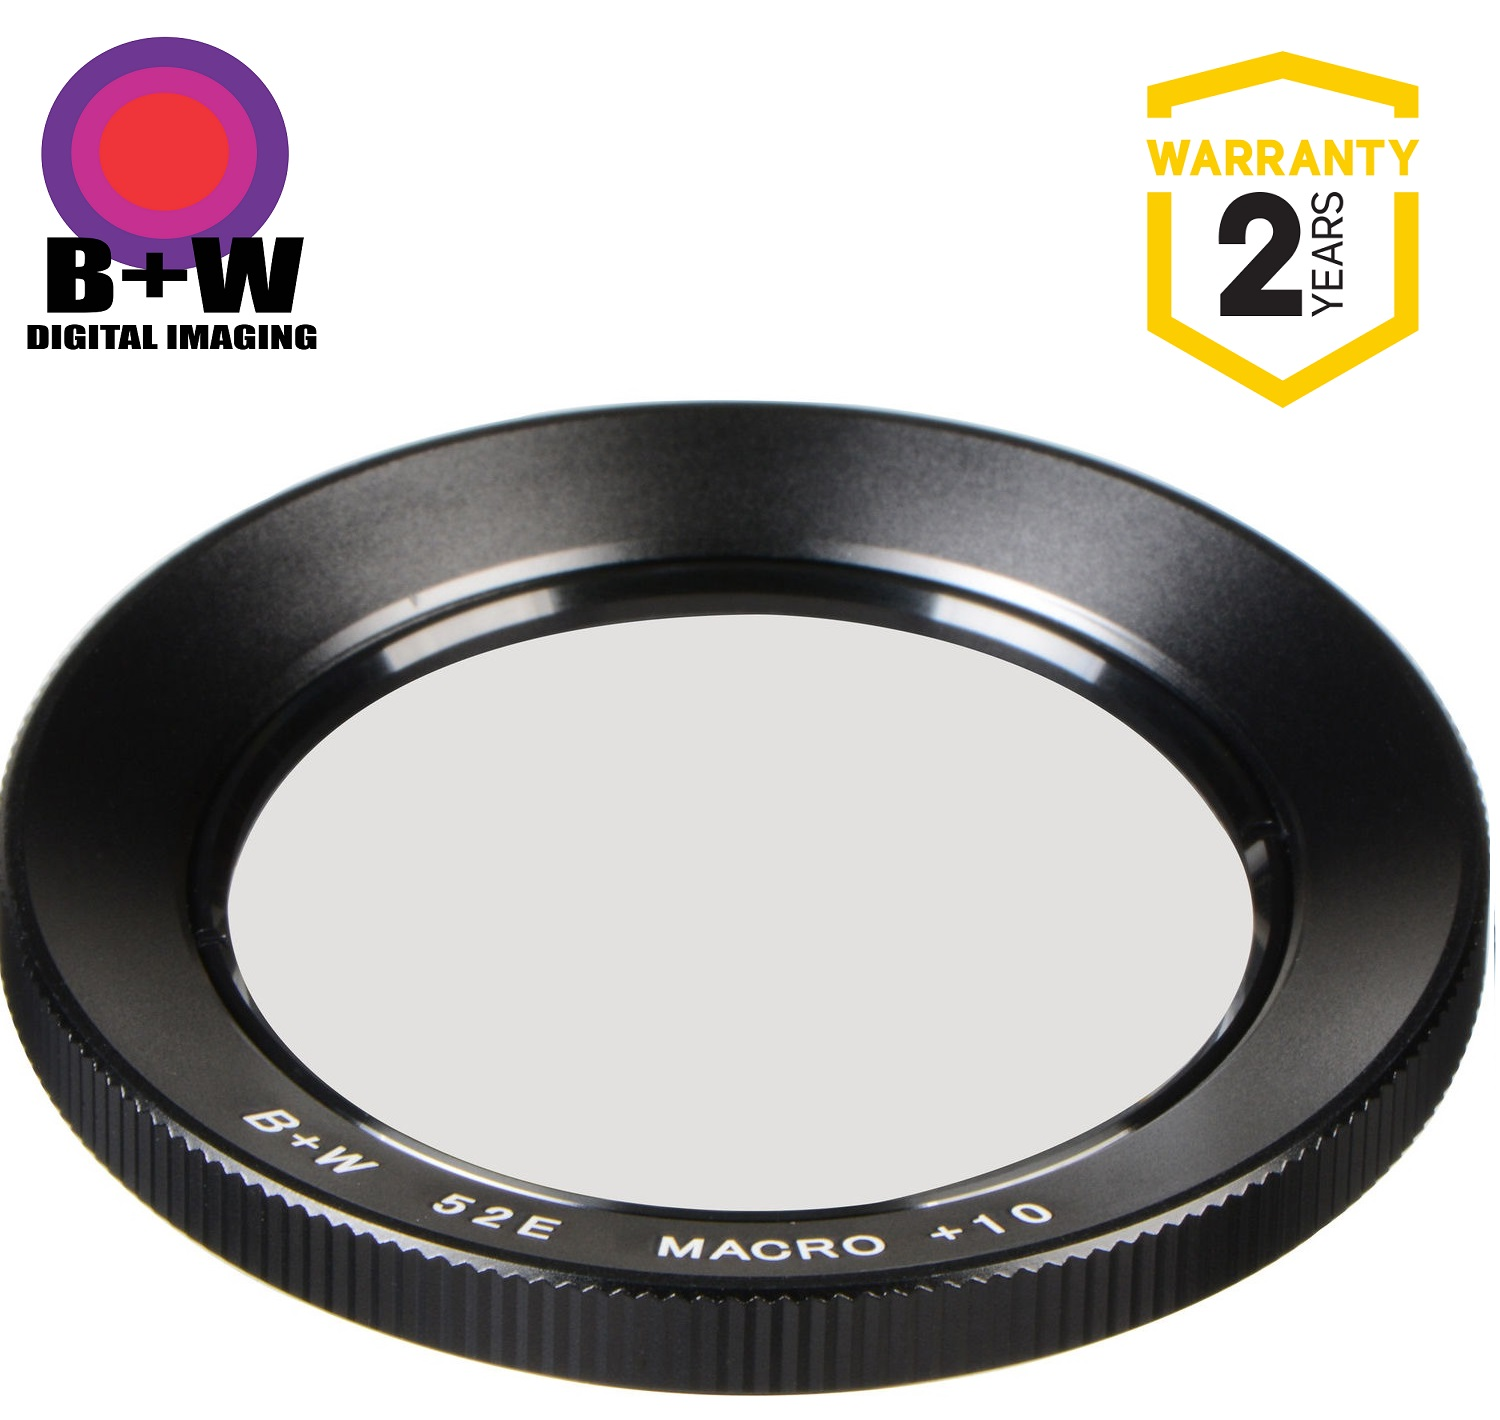 B+W 52mm NL10 Macro Close up +10 Lens